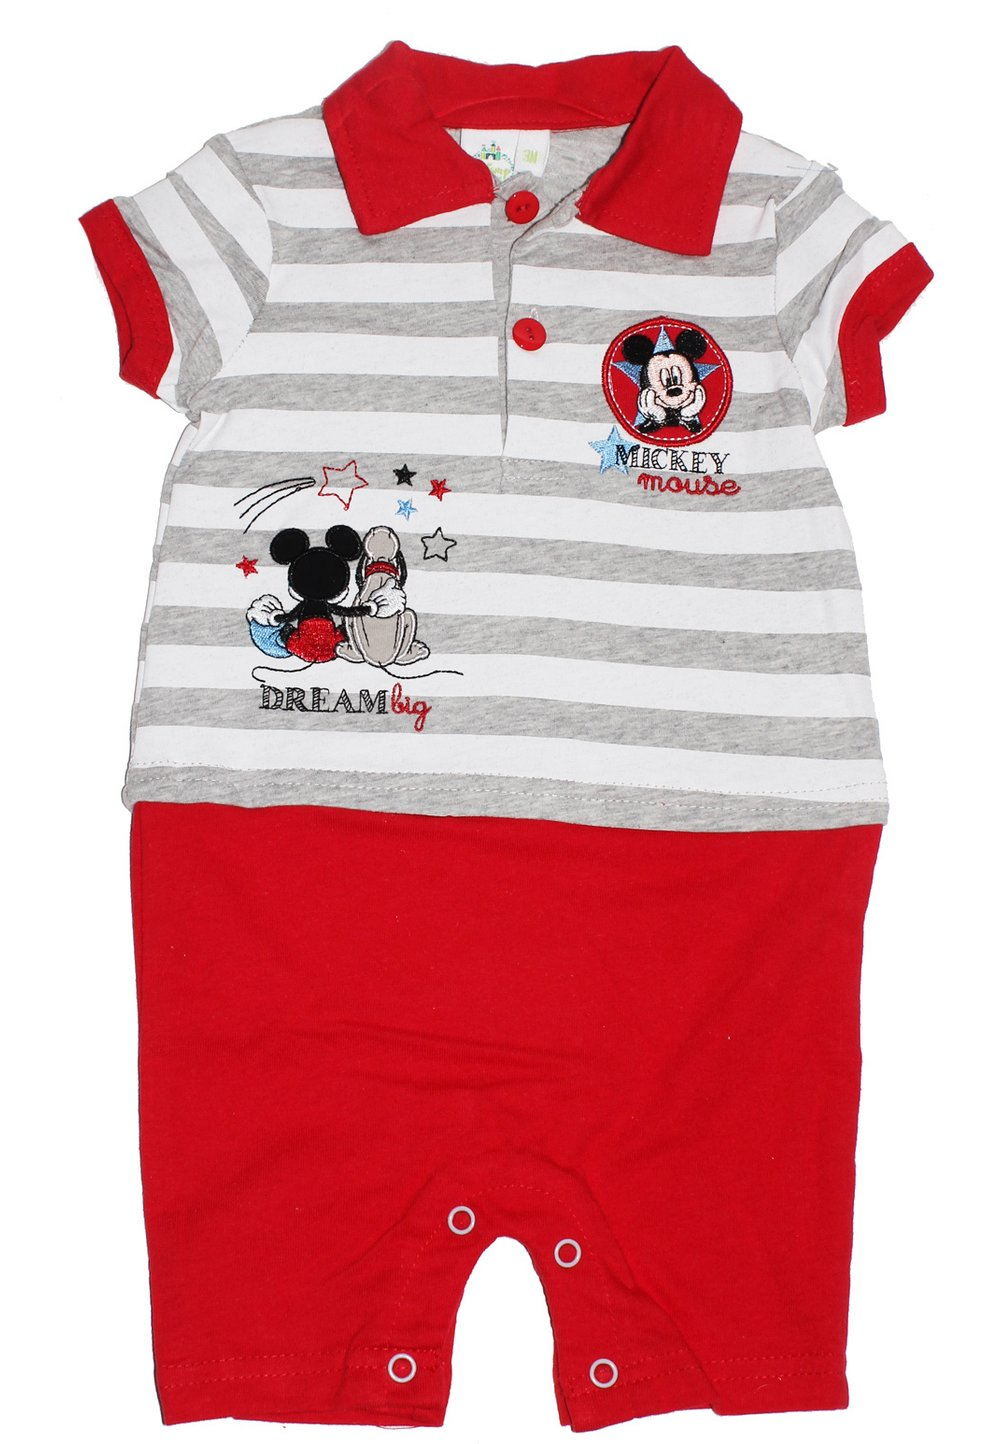 Salopeta Bebe Maneca Scurta, Mickey Mouse, Dream, Rosie